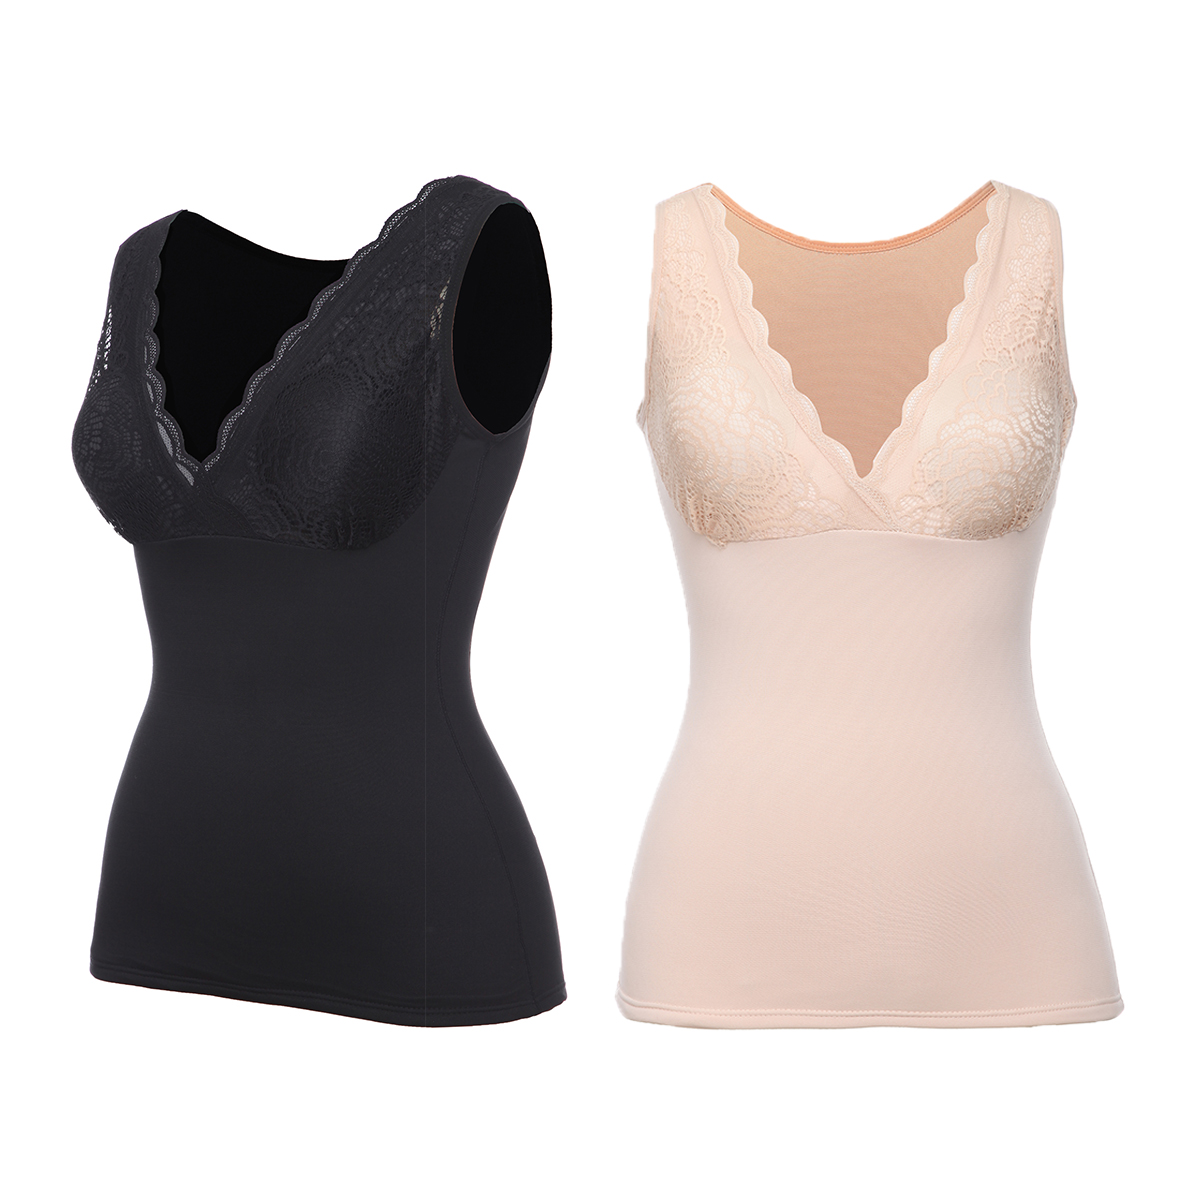 Thermal Underwear Tops for Women Fleece Lined Tank Tops Lace V Neck Camisoles